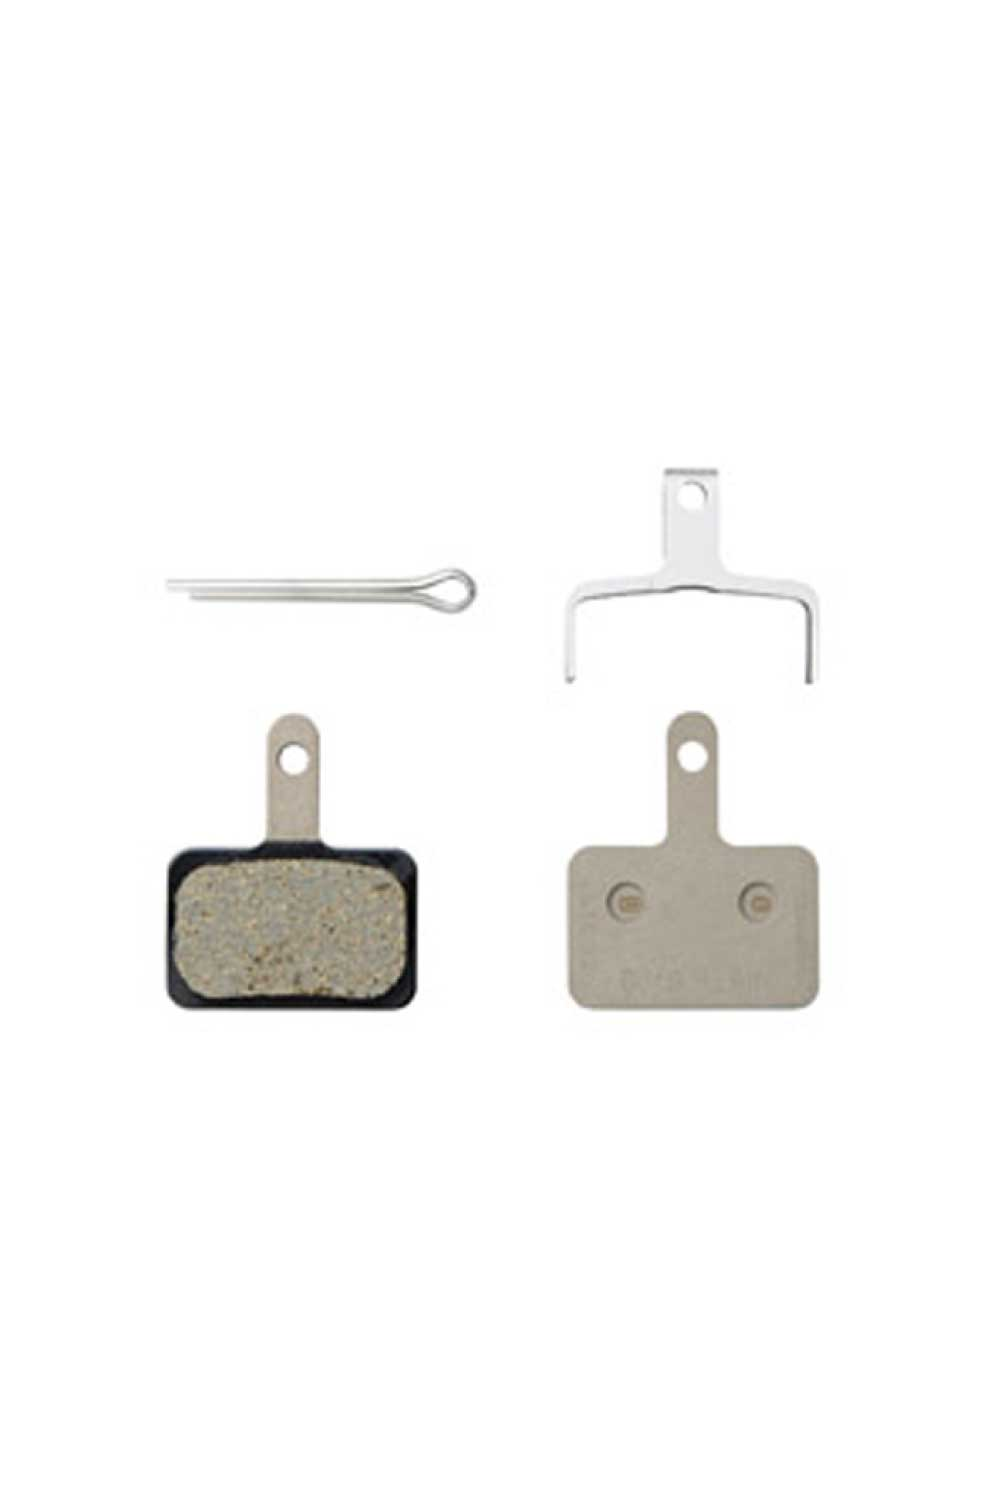 Shimano BR-MT400 B01S Resin Brake Pads Disc